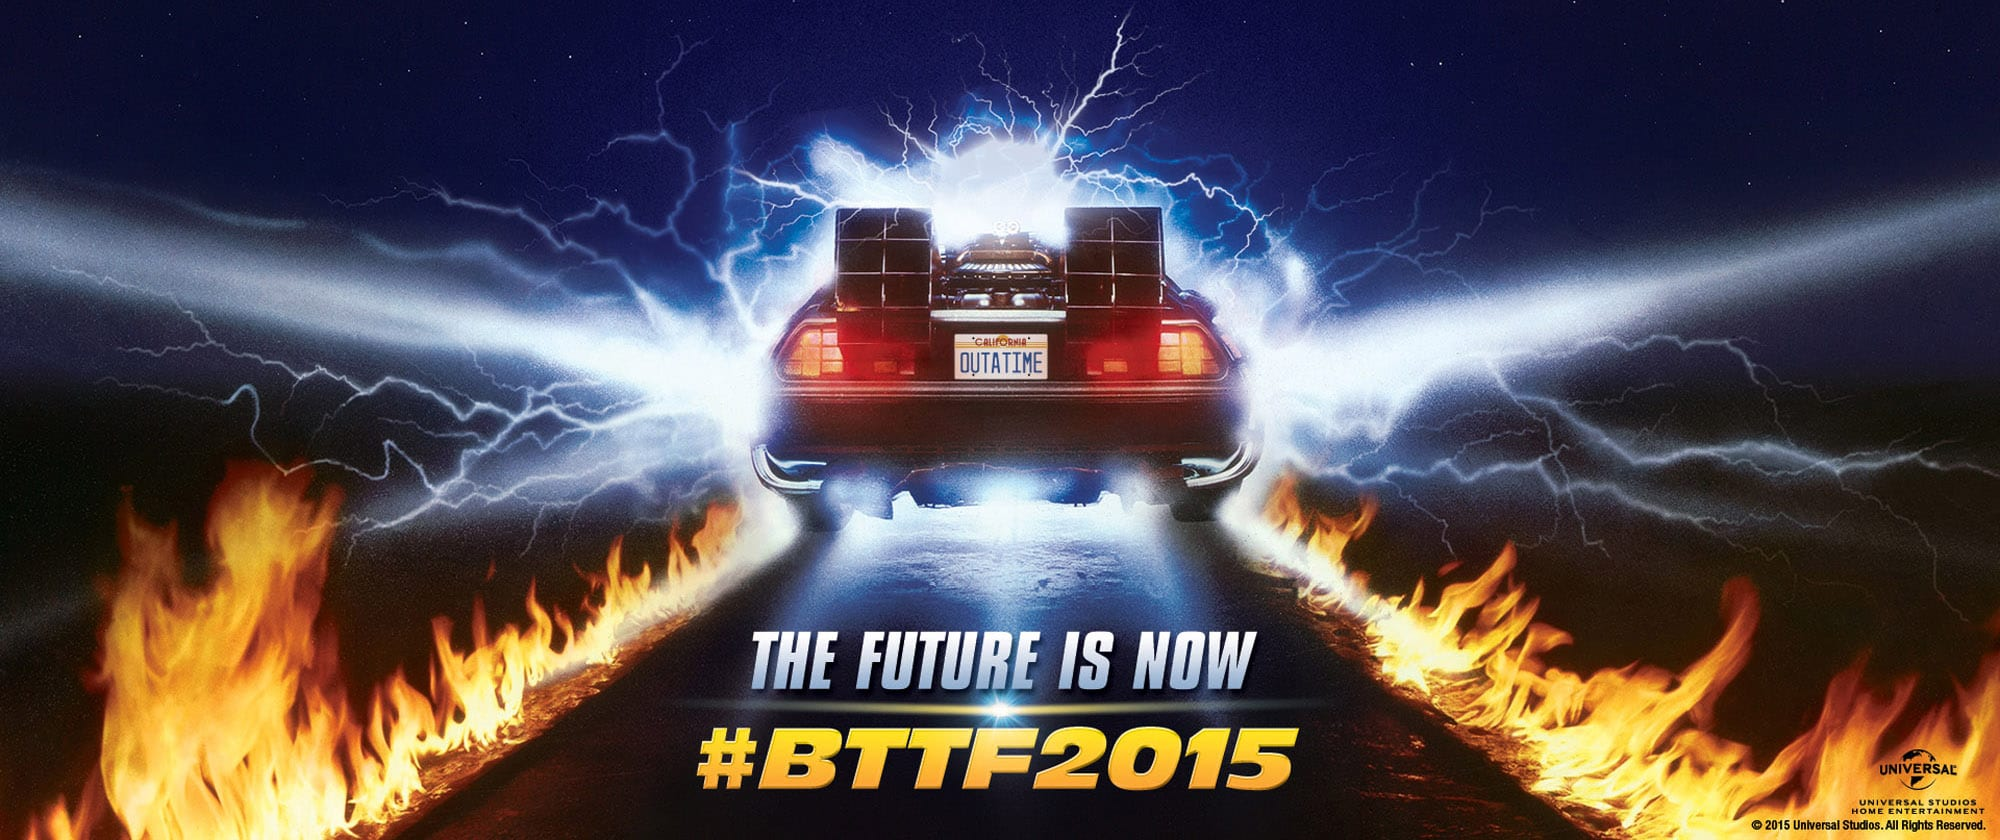 Great Scott – The future is now